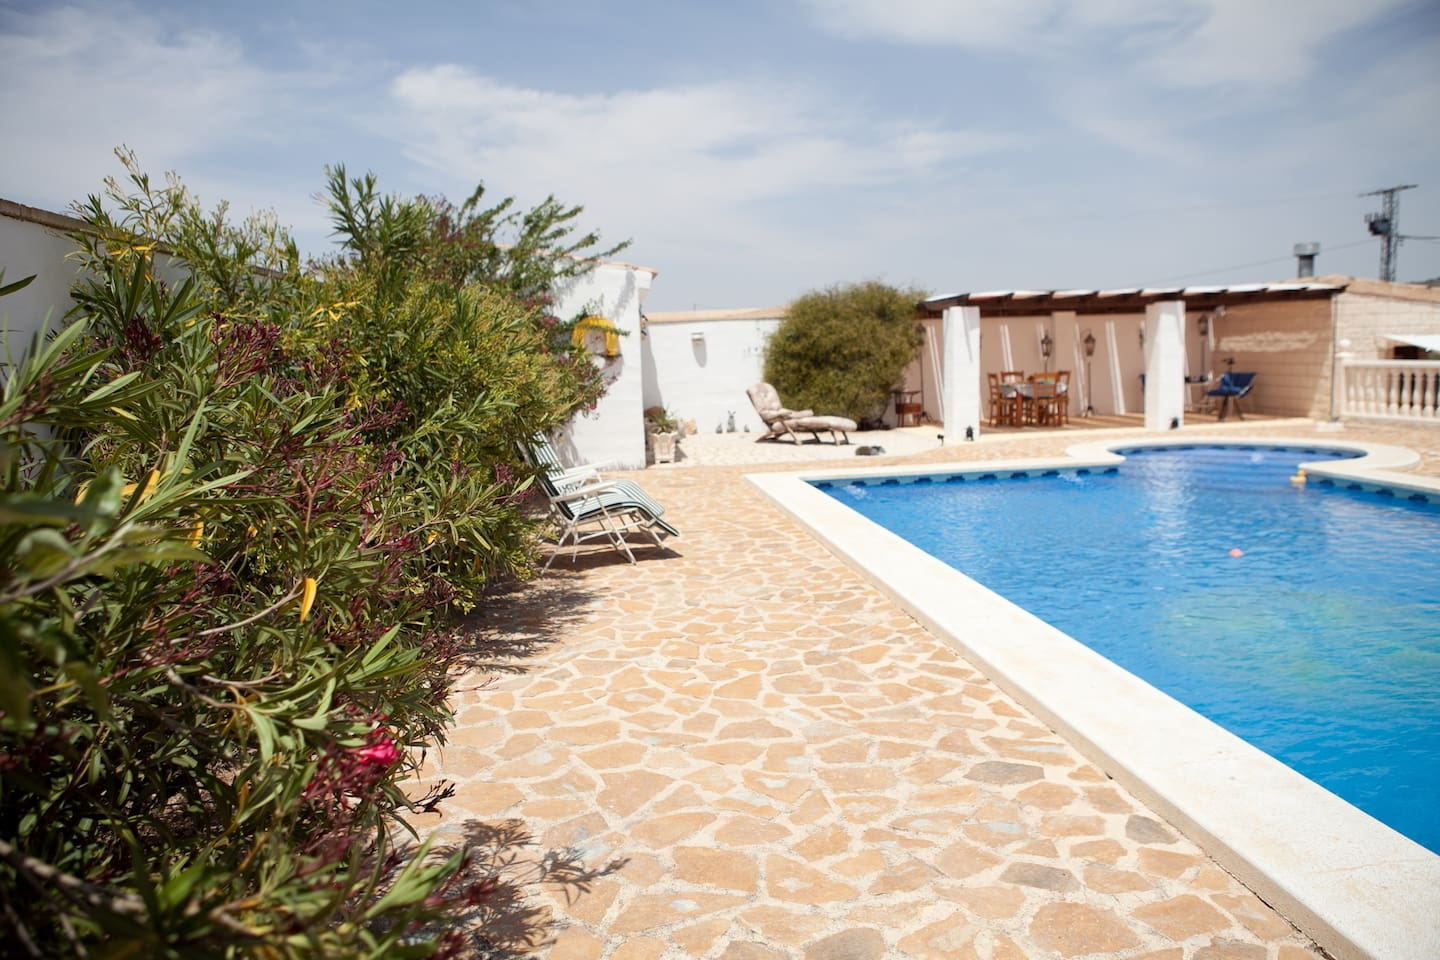 Your comfort is our priority .    Plenty of loungers and chairs for your use by the pool